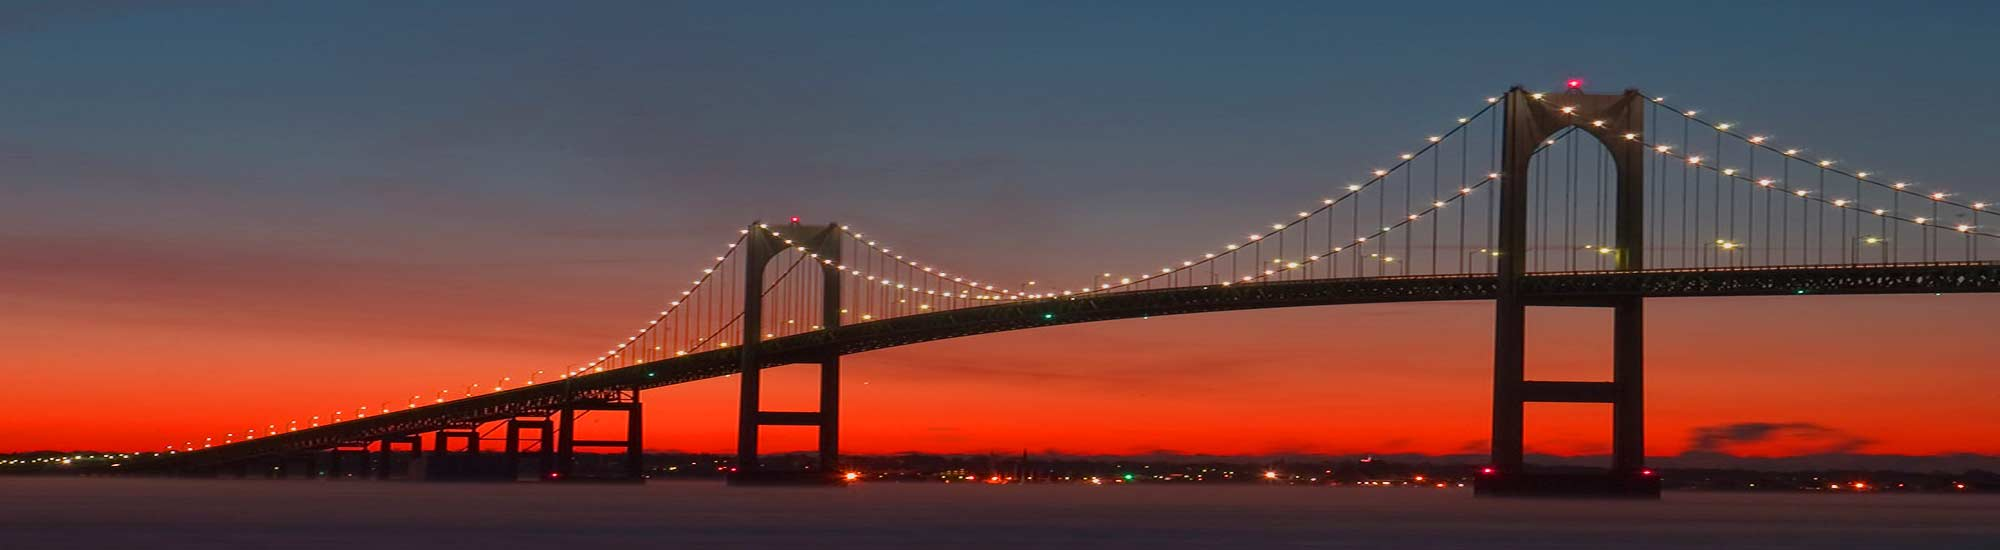 take in amazing views of the newport bridge at sunset